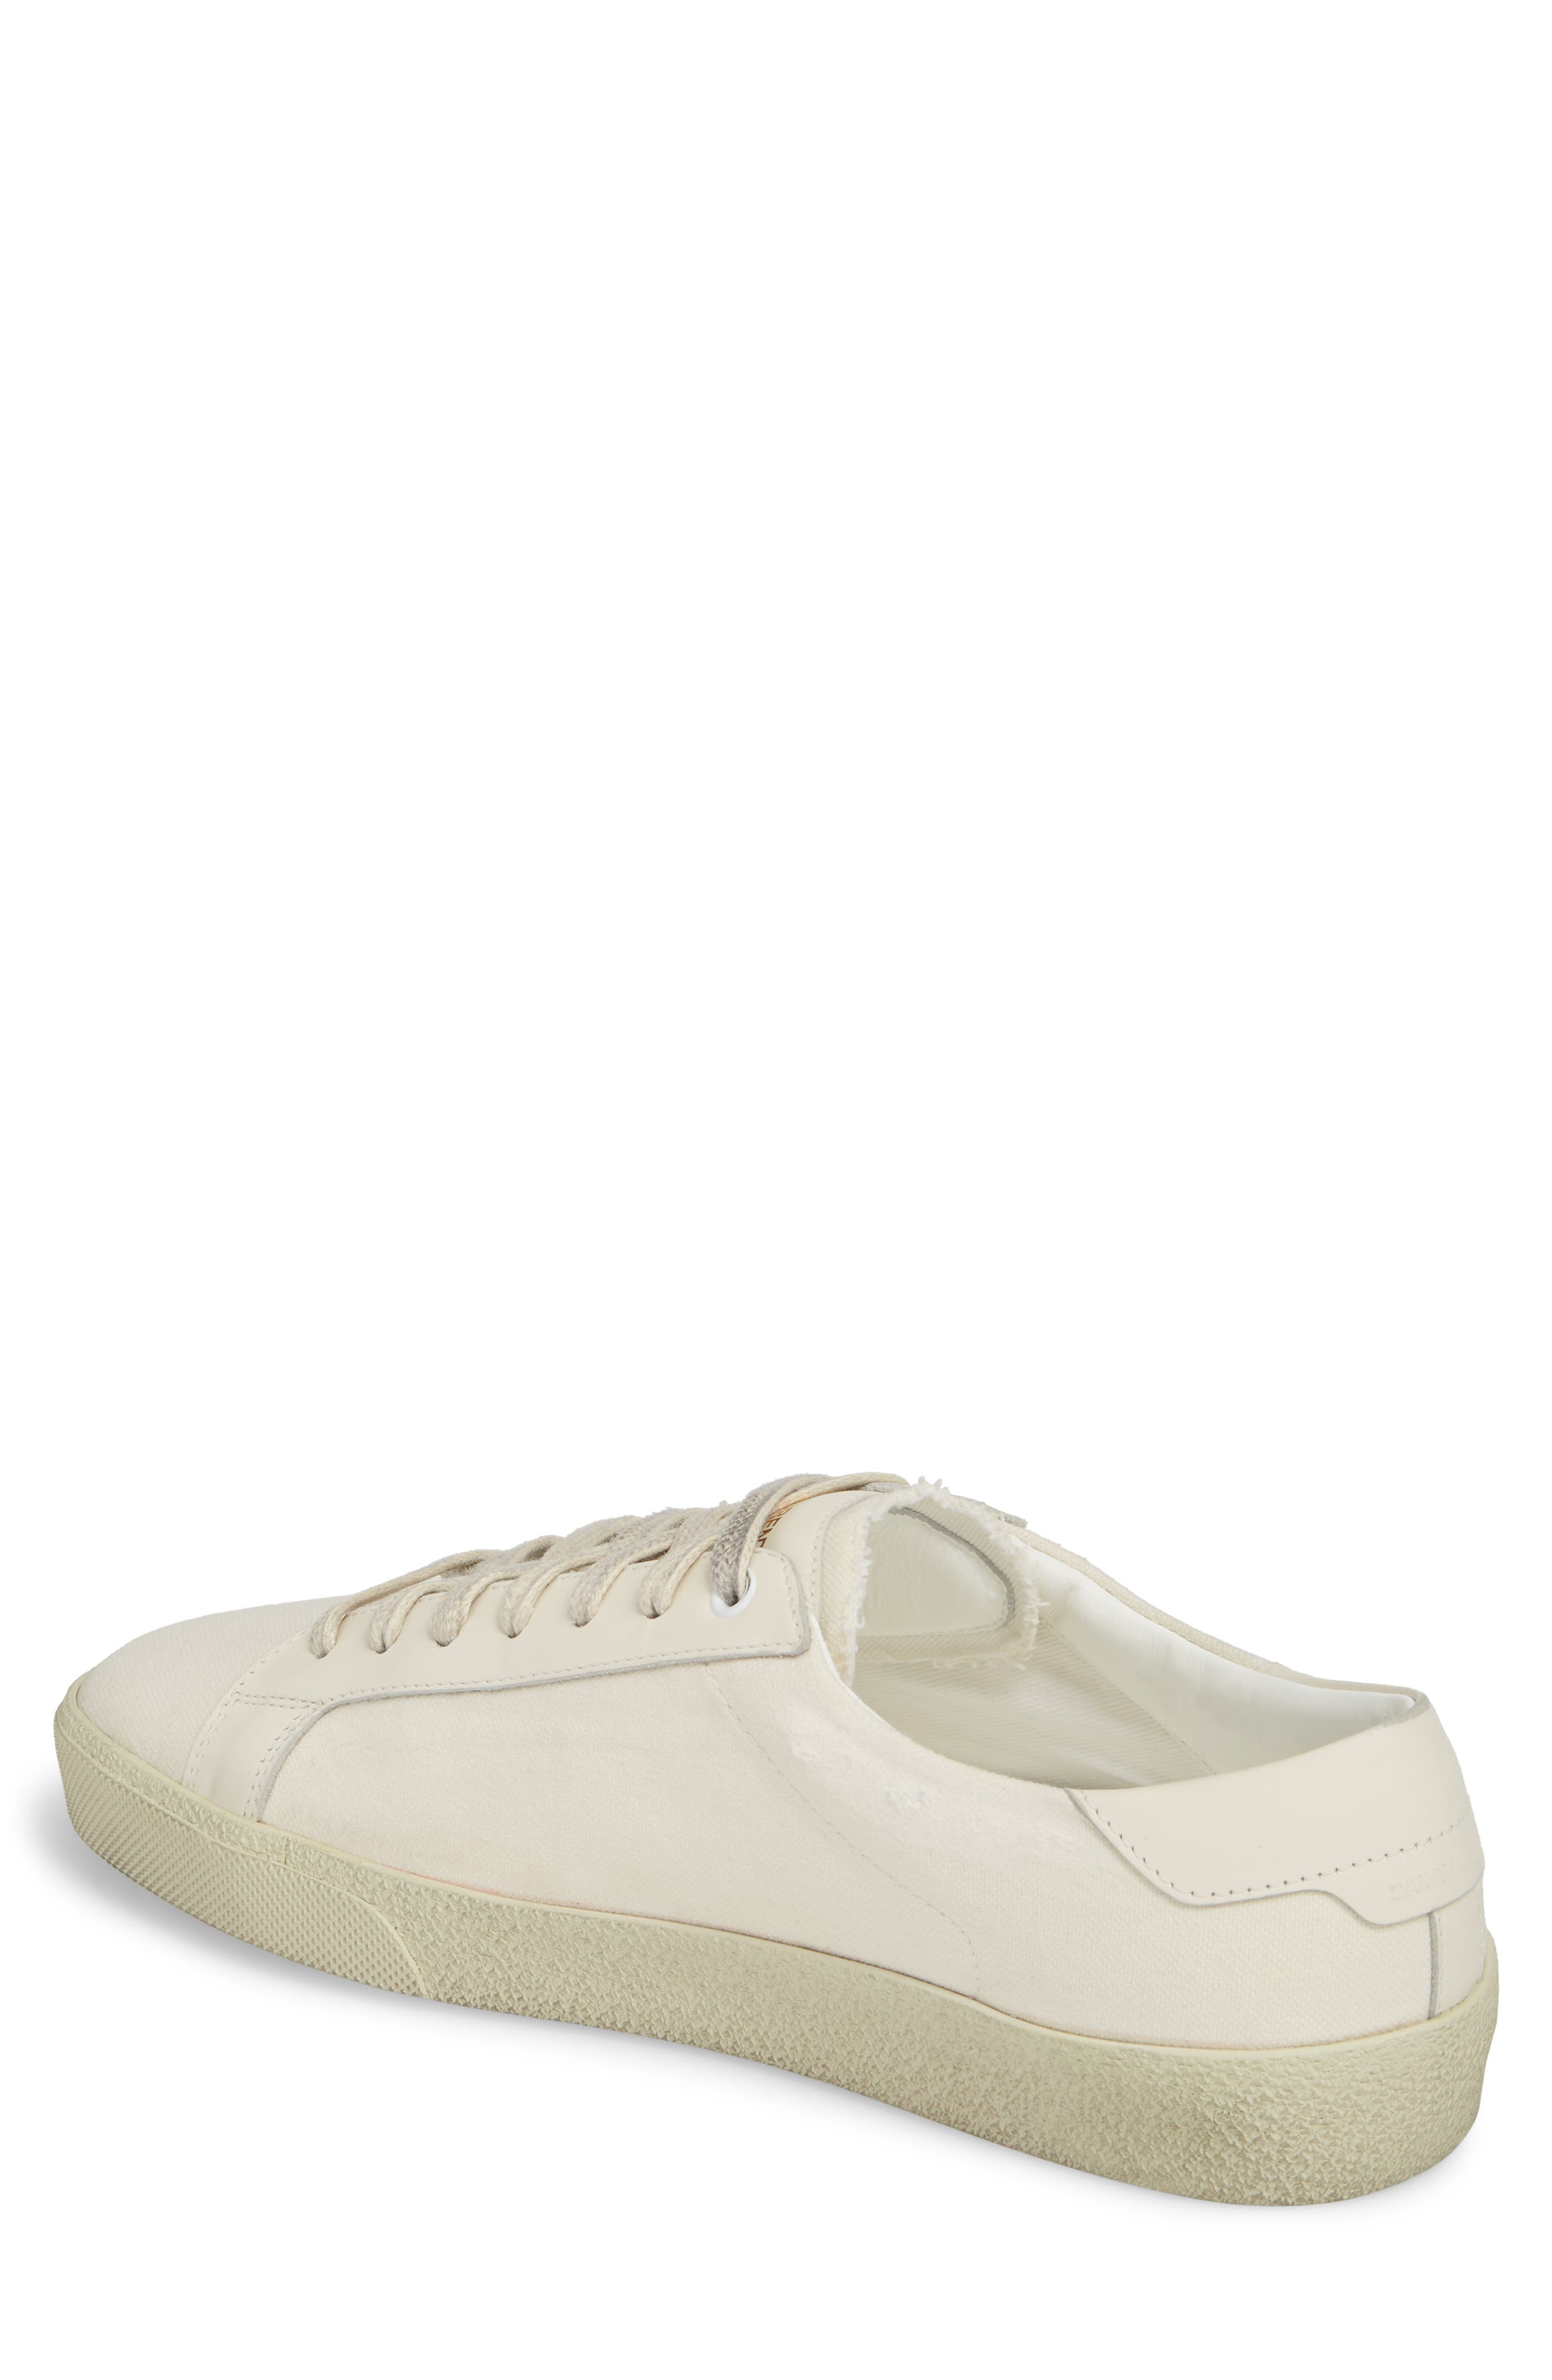 Embroidered Low Top Sneaker,                             Alternate thumbnail 2, color,                             Pesca